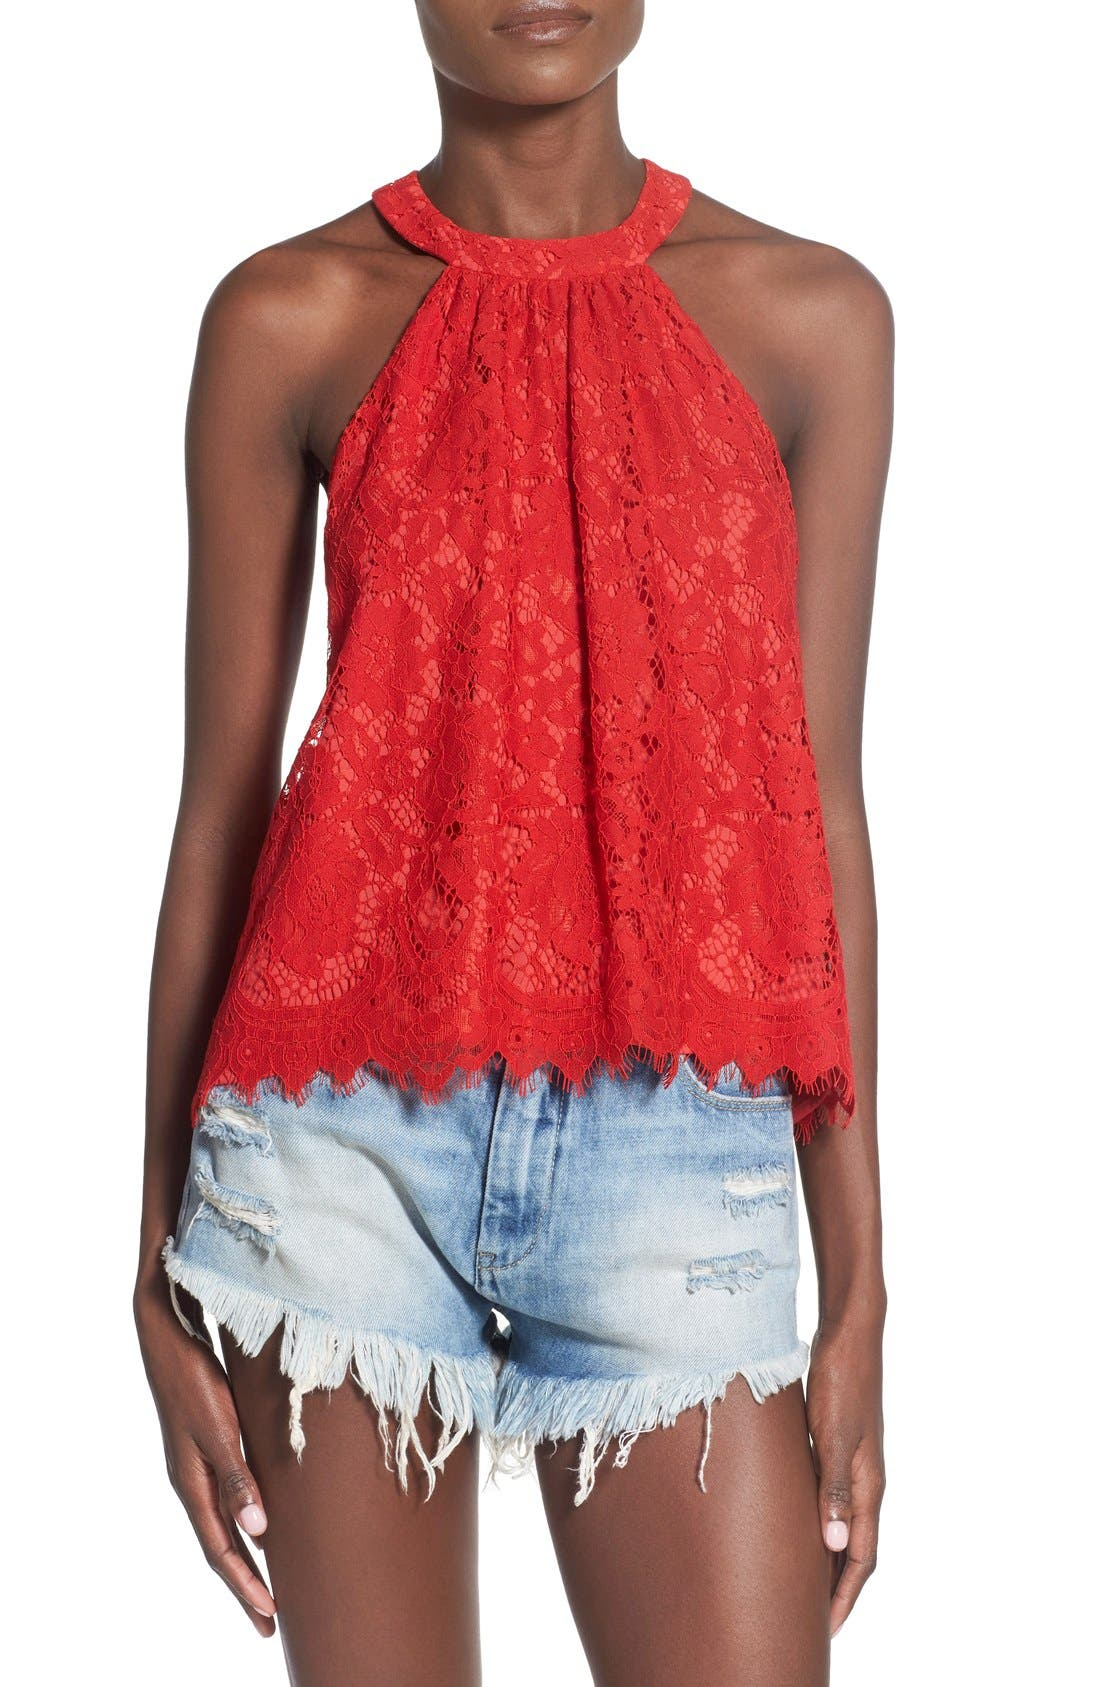 Alternate Image 1 Selected - Wayf High Neck Lace Tank